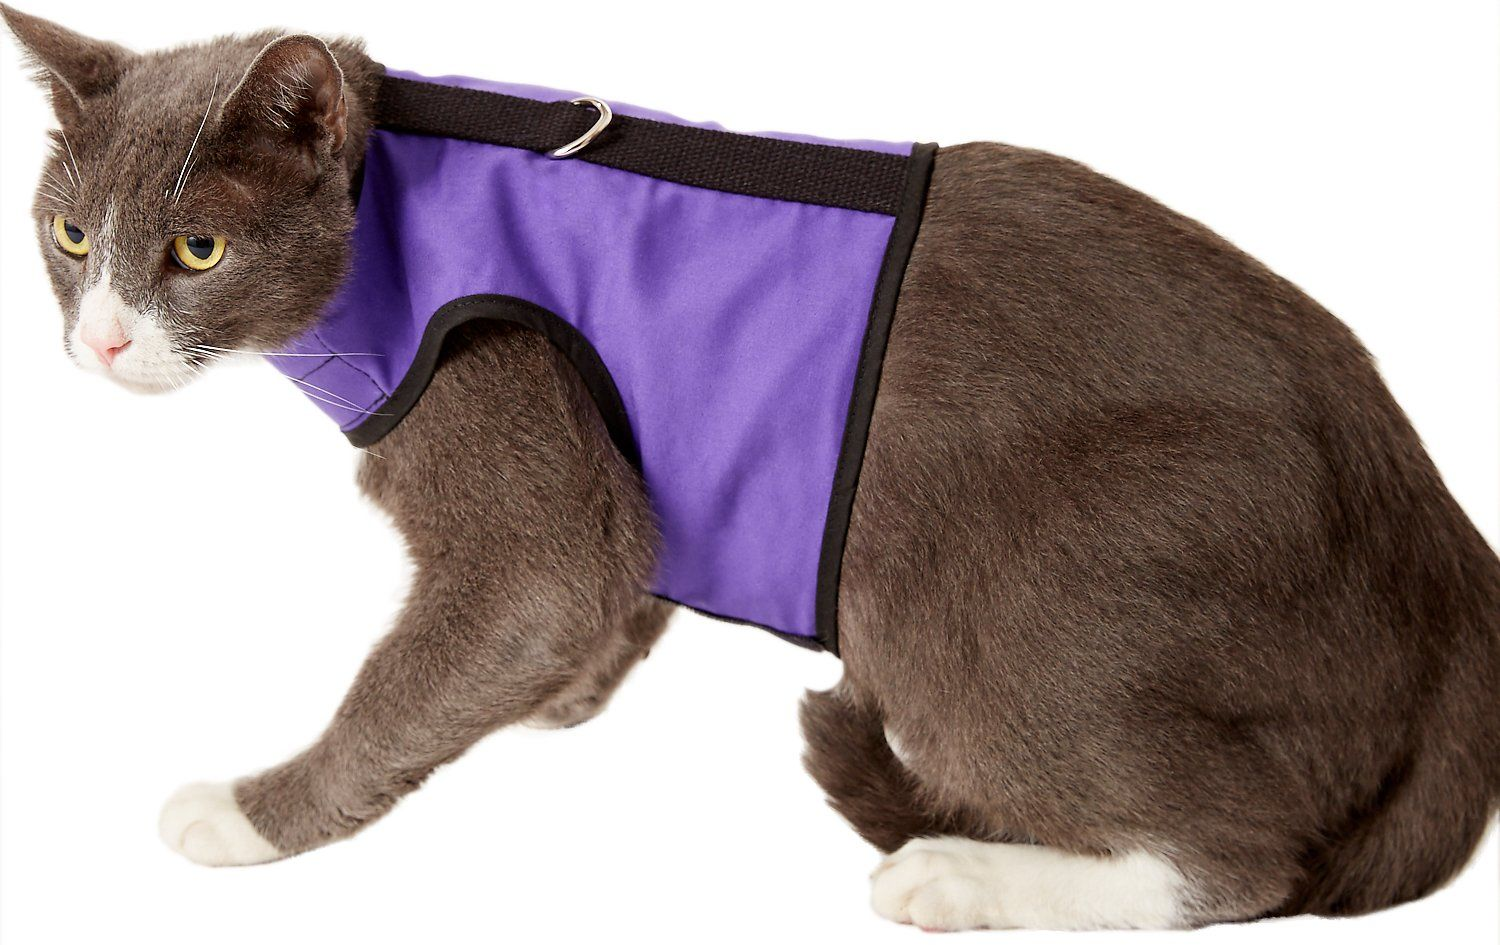 Https Www Chewy Com Kitty Holster Cat Harness Purple Dp 134273 Utm Source Google Product Utm Medium Cpc Utm Campaign Hg U Cat Harness Cats Cat With Blue Eyes